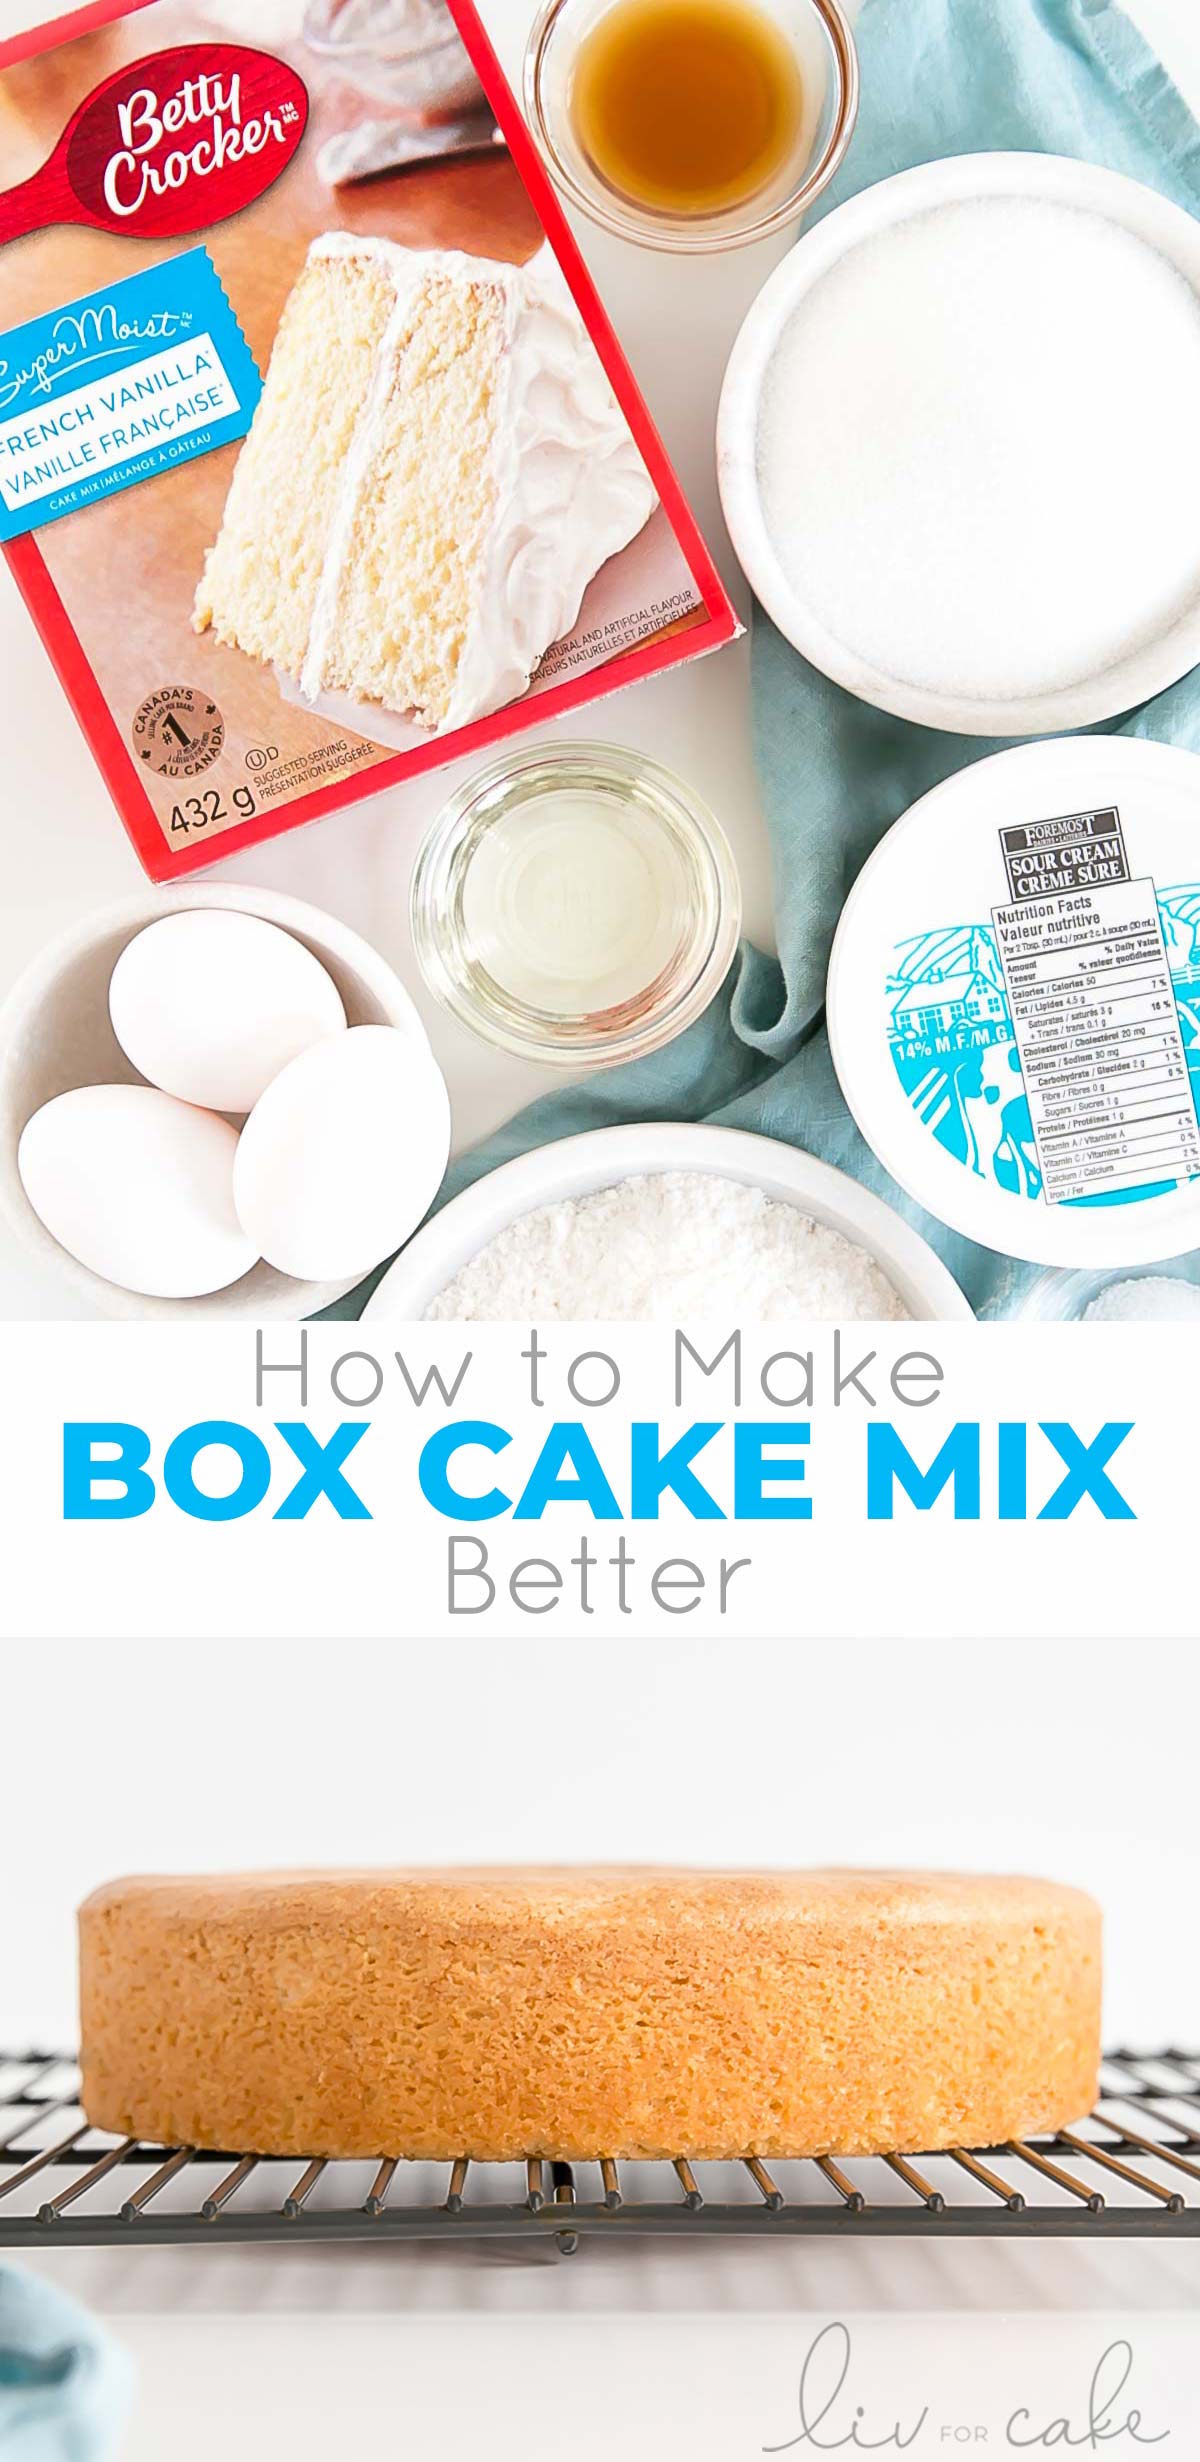 Box cake mix collage